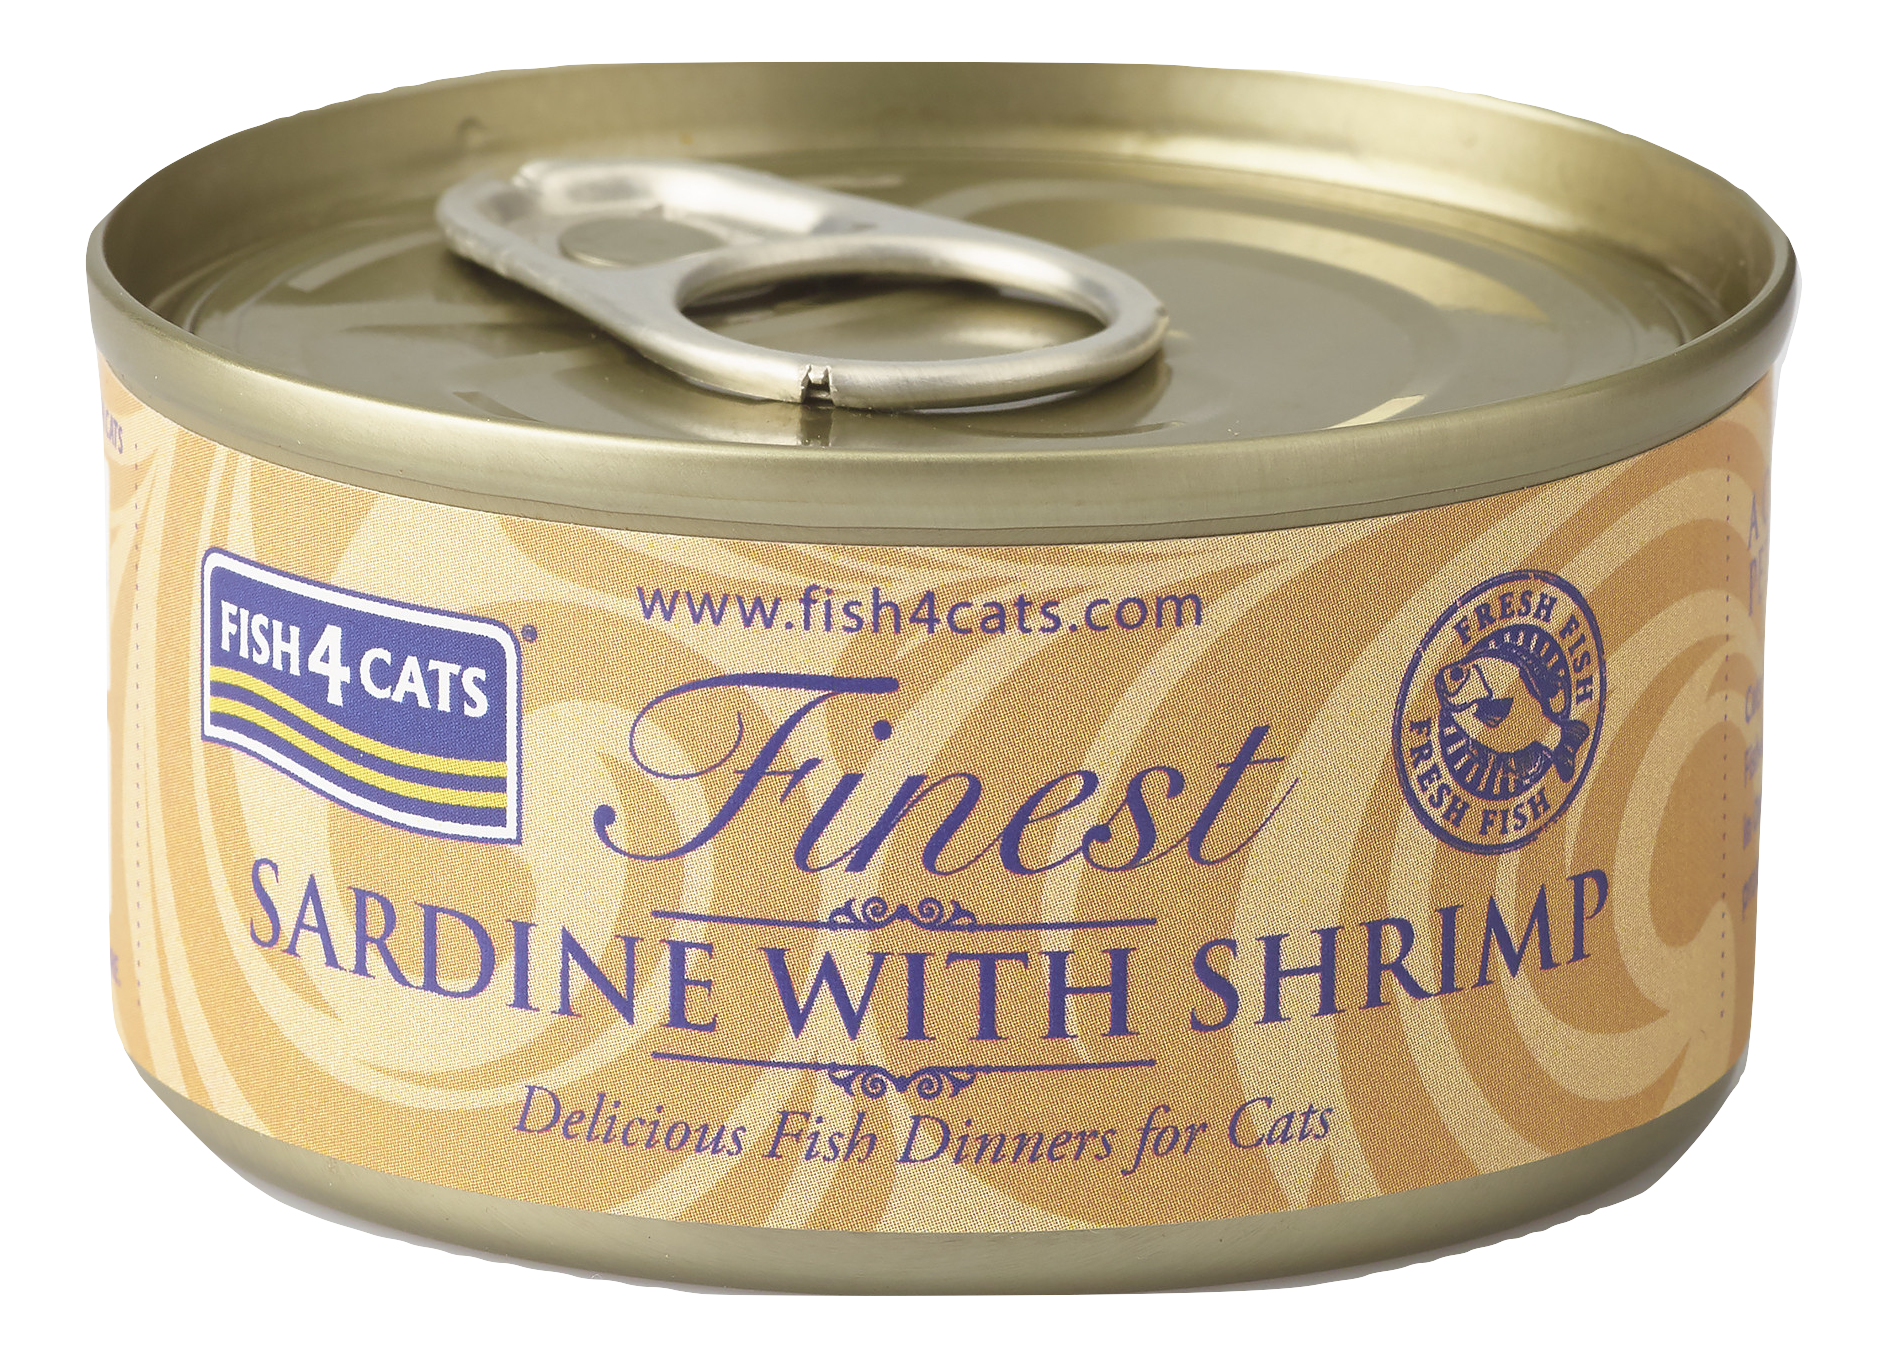 Sardine with Shrimp_single_tin_burned